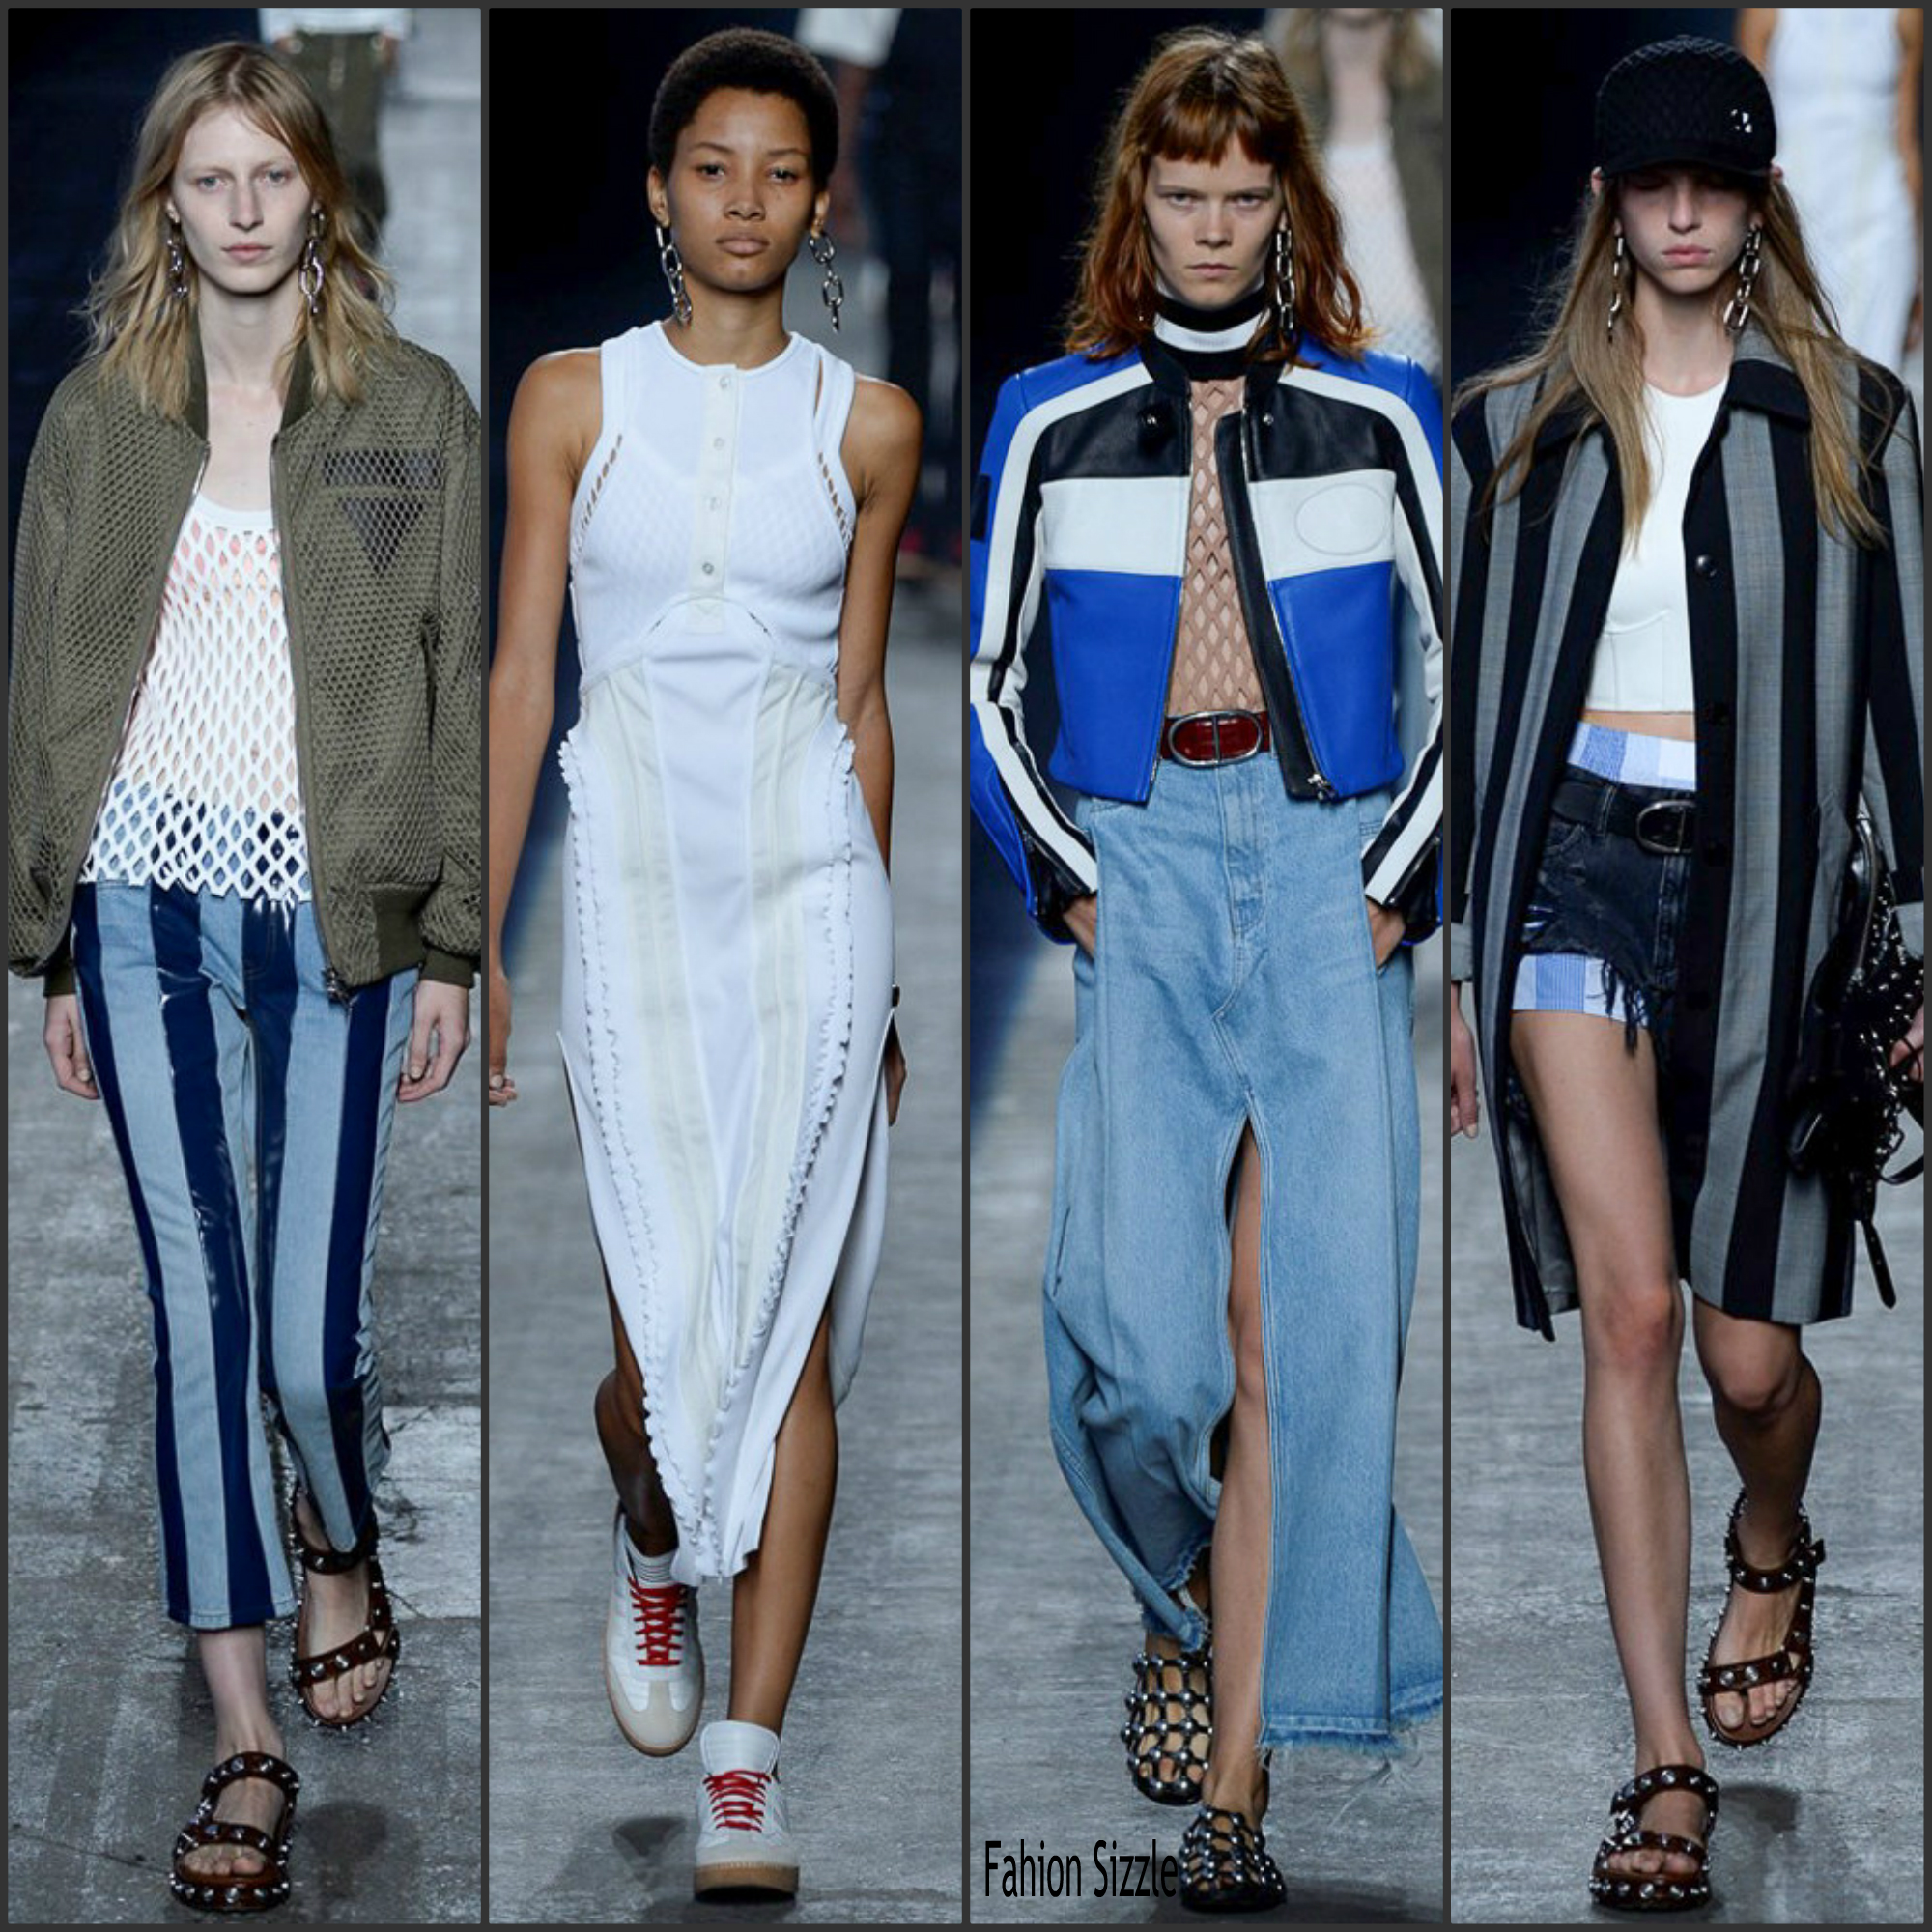 alexander-wang-spring-2016-ready-to-wear-